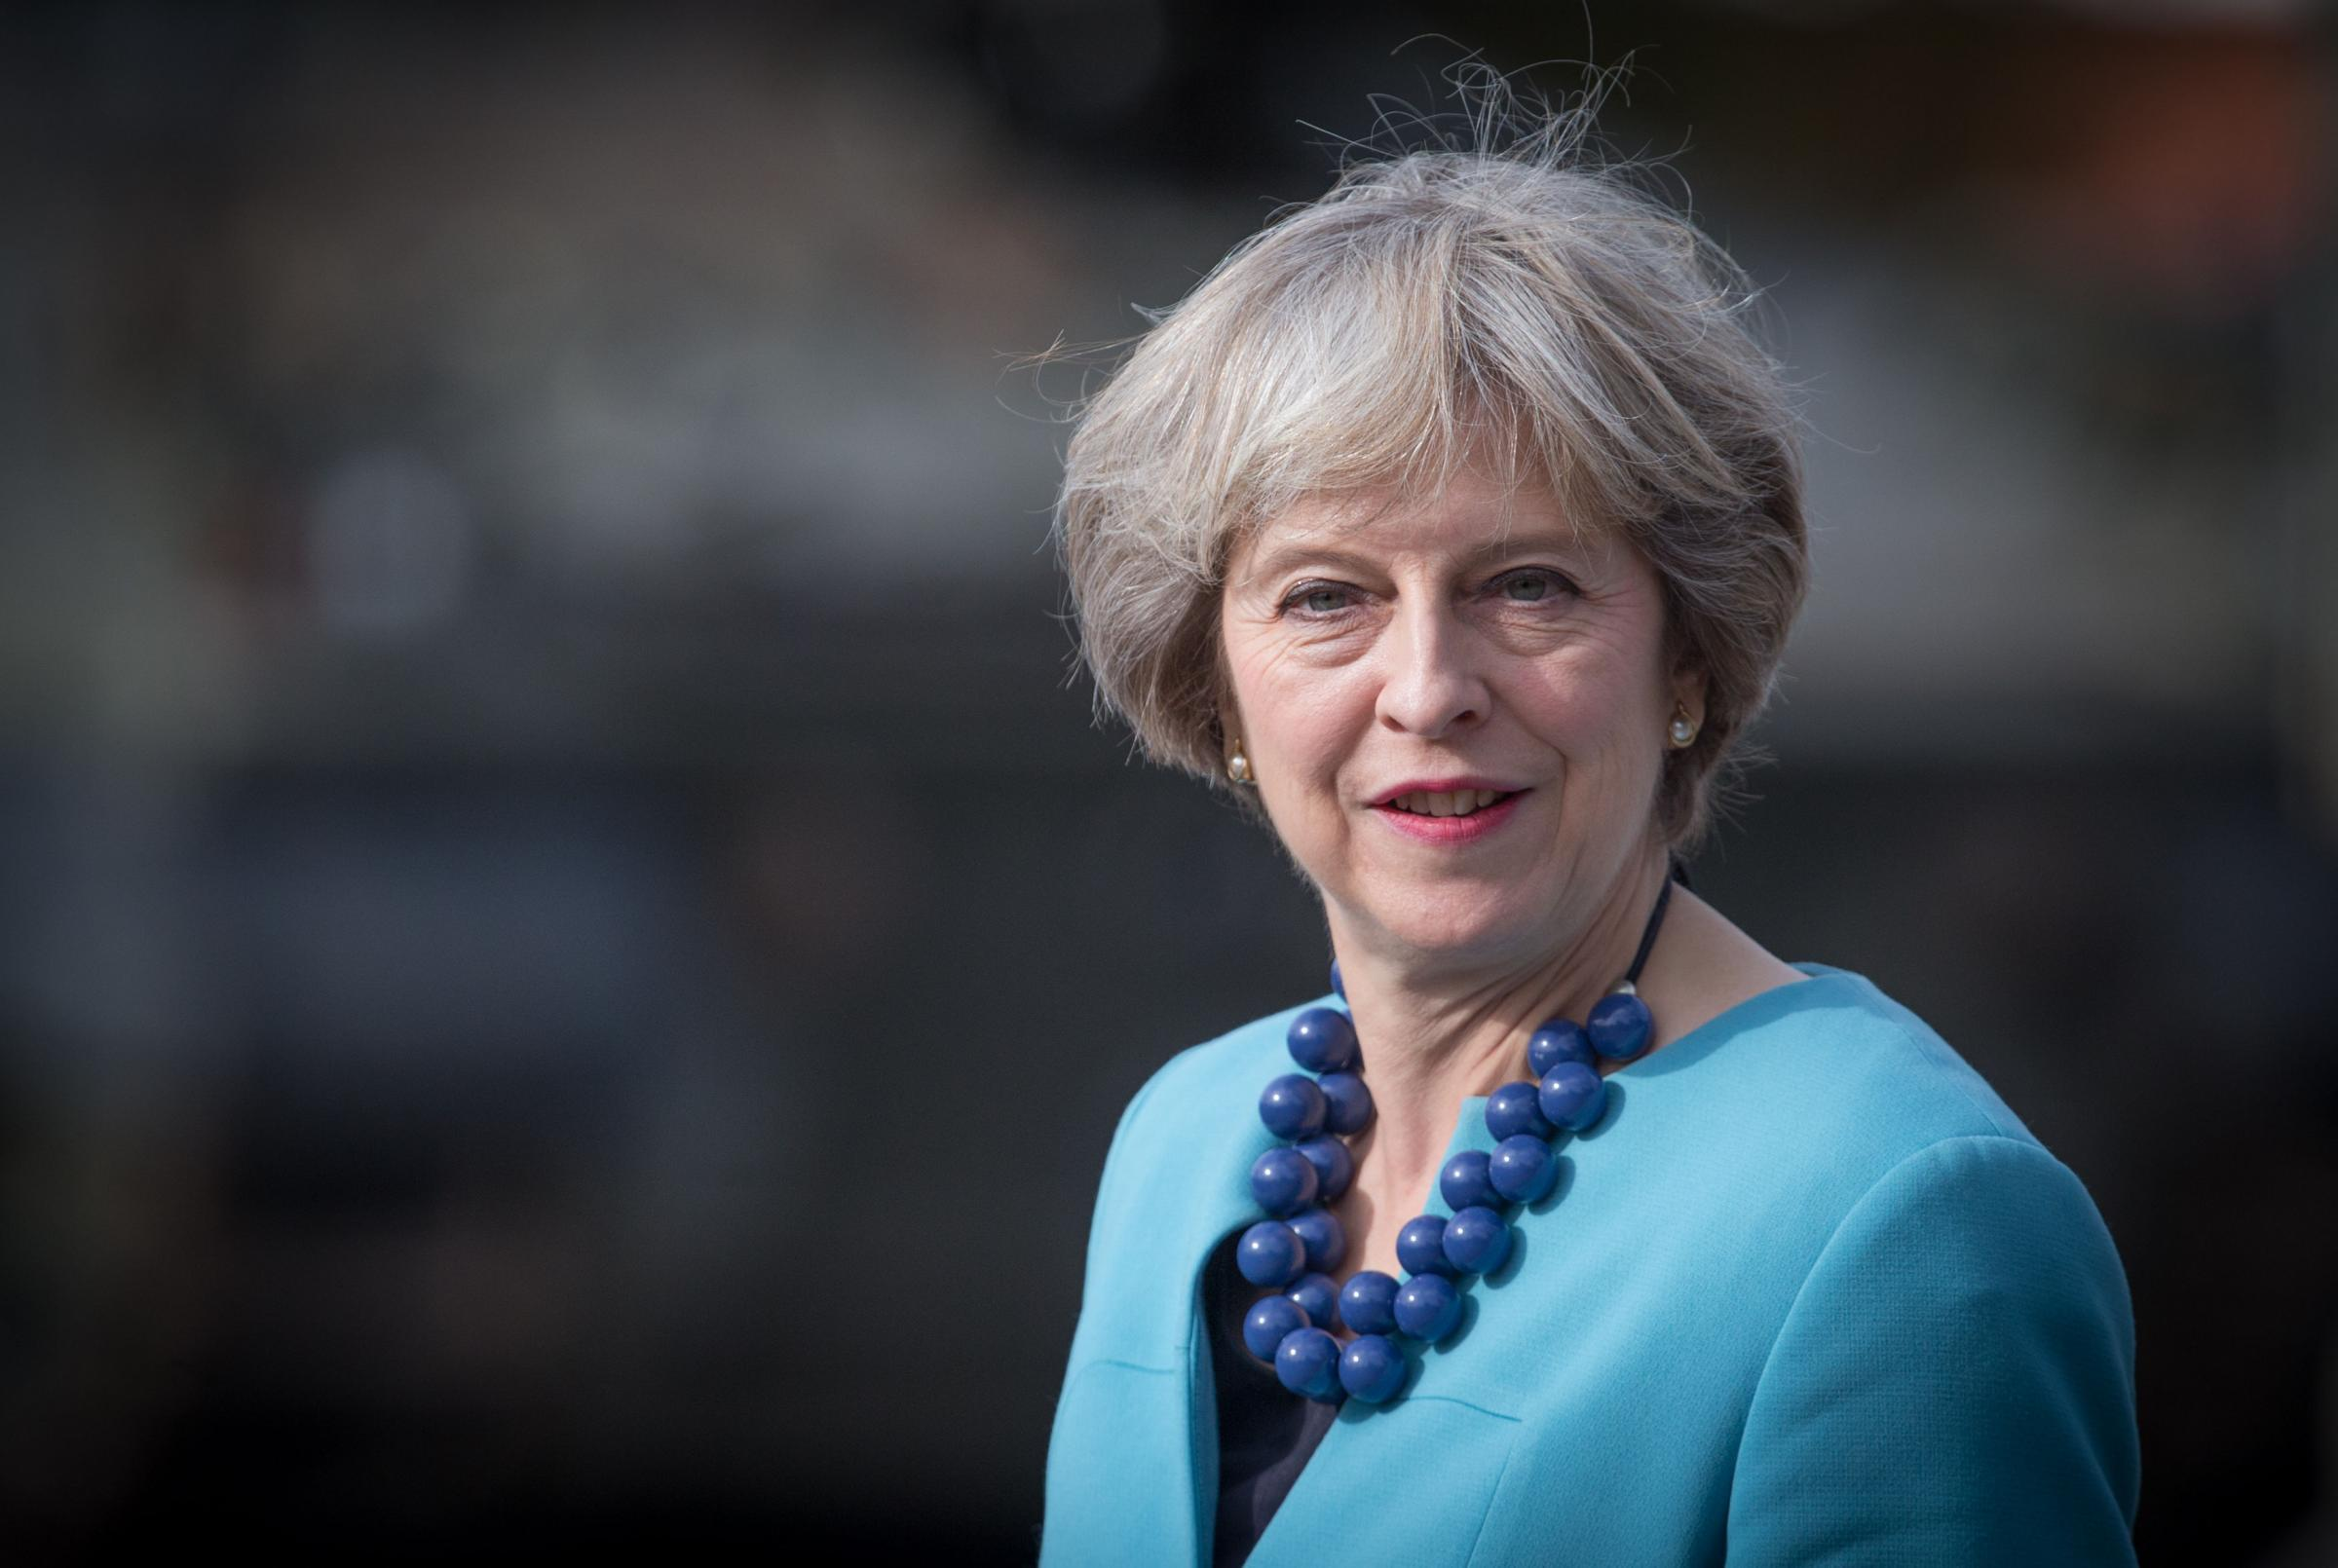 OPPORTUNITY: Did Theresa May miss the opportunity to make a stand against sexism?